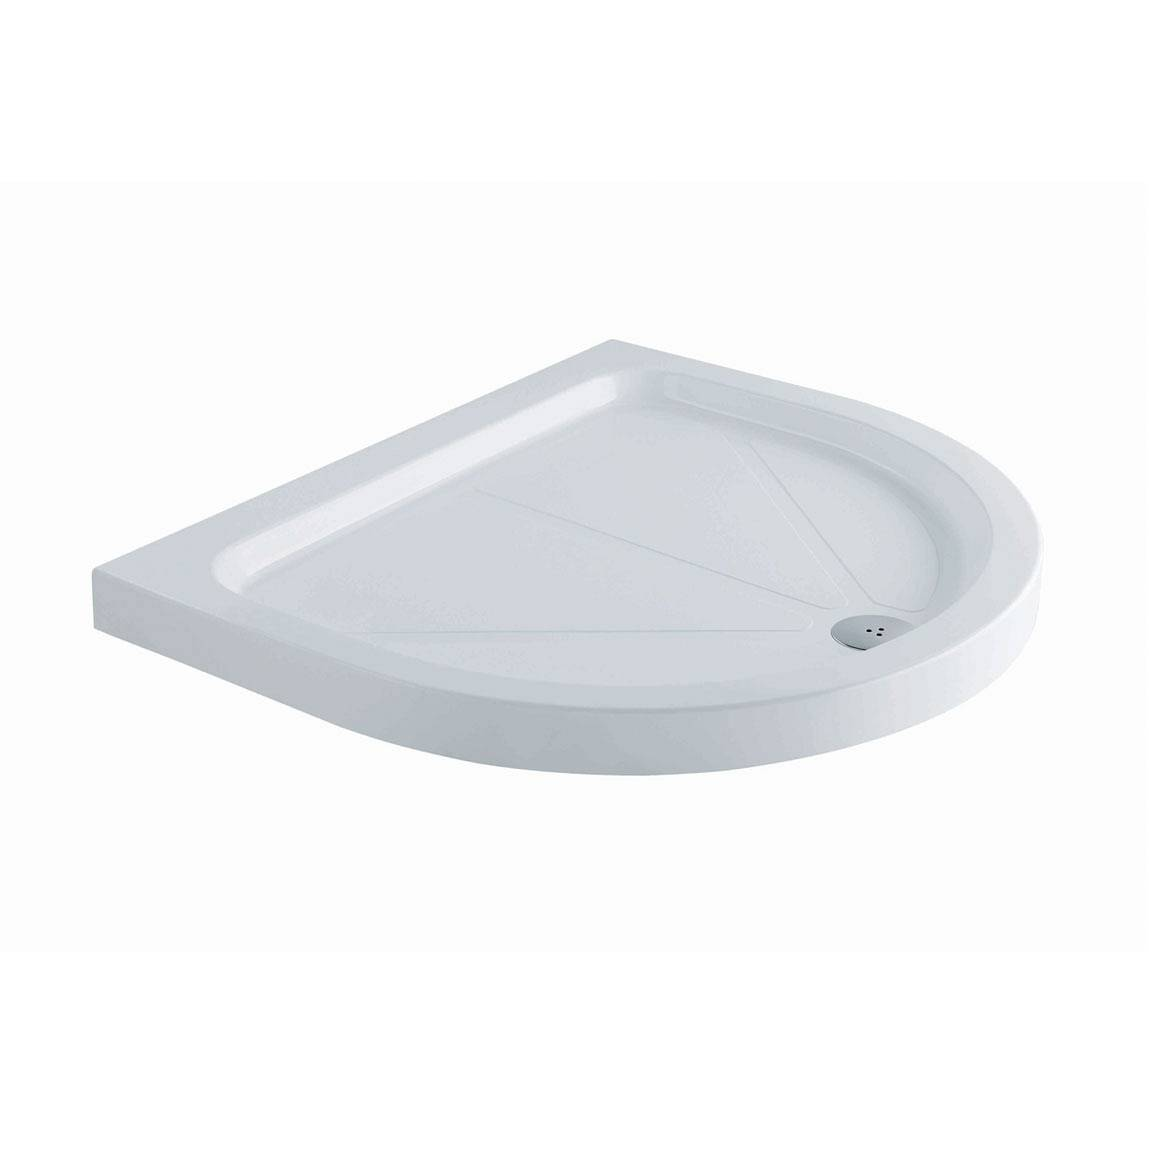 Image of D Shaped Stone Shower Tray